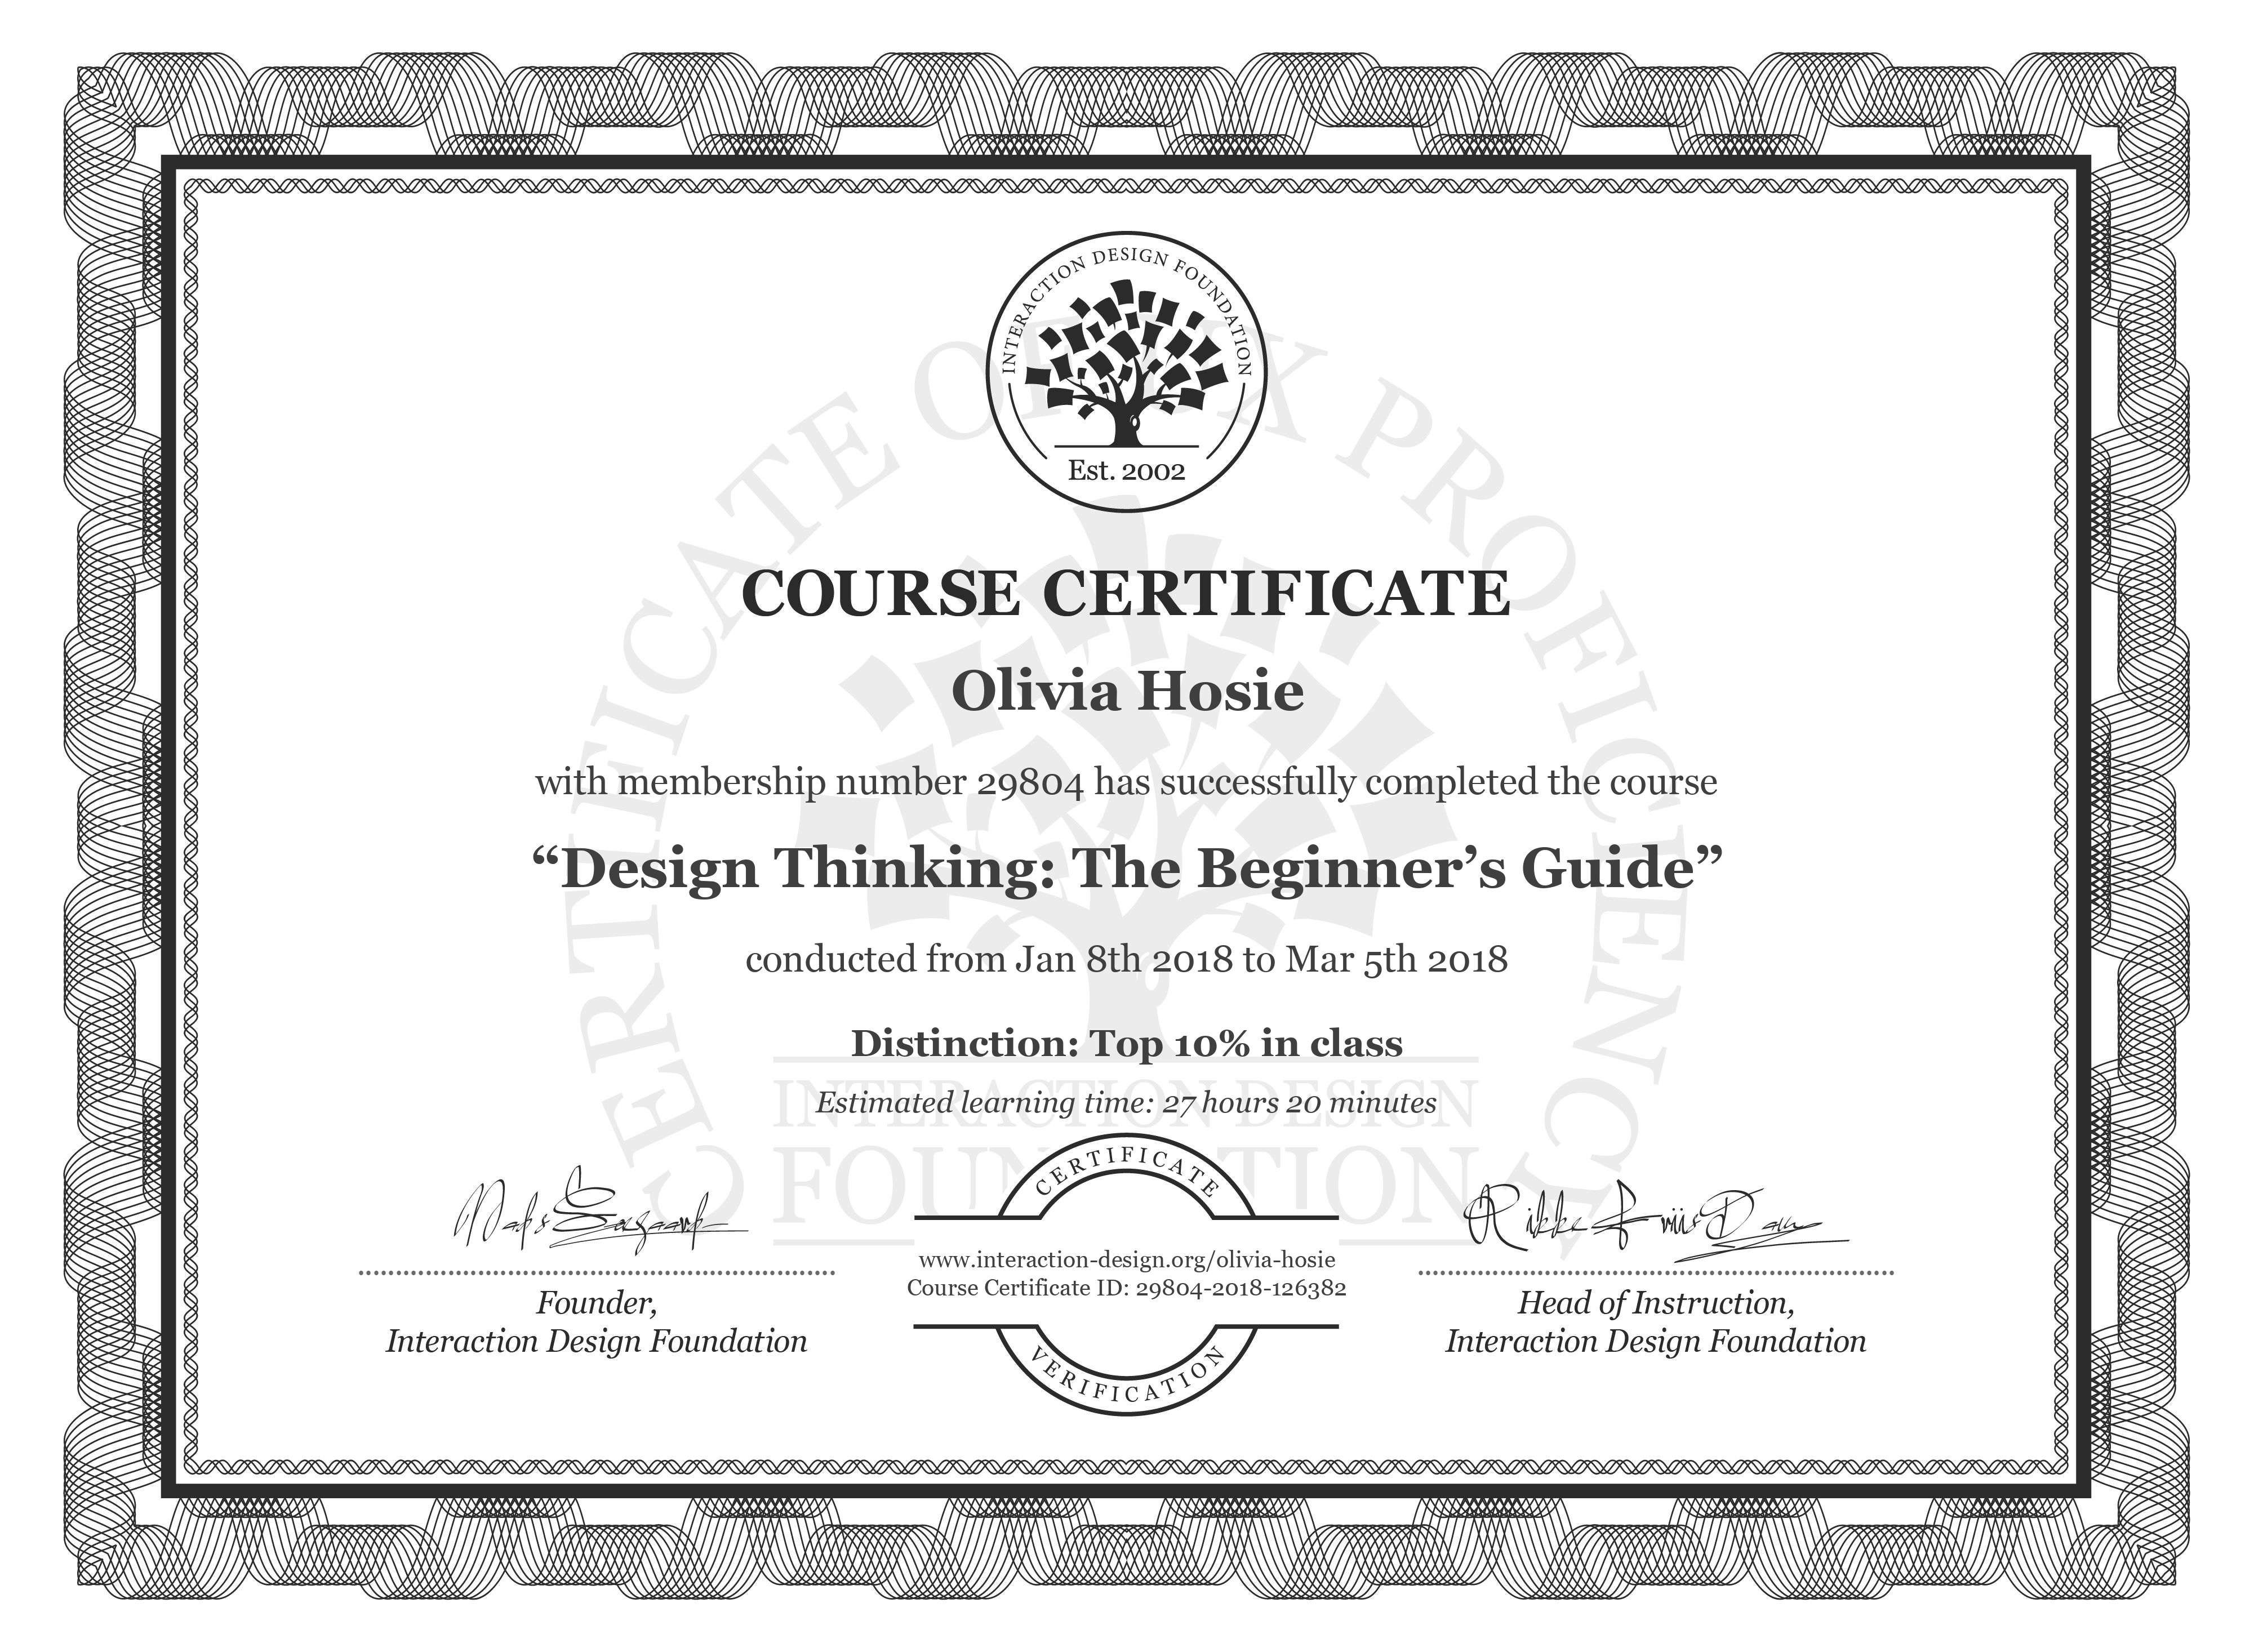 Olivia Hosie: Course Certificate - Design Thinking: The Beginner's Guide